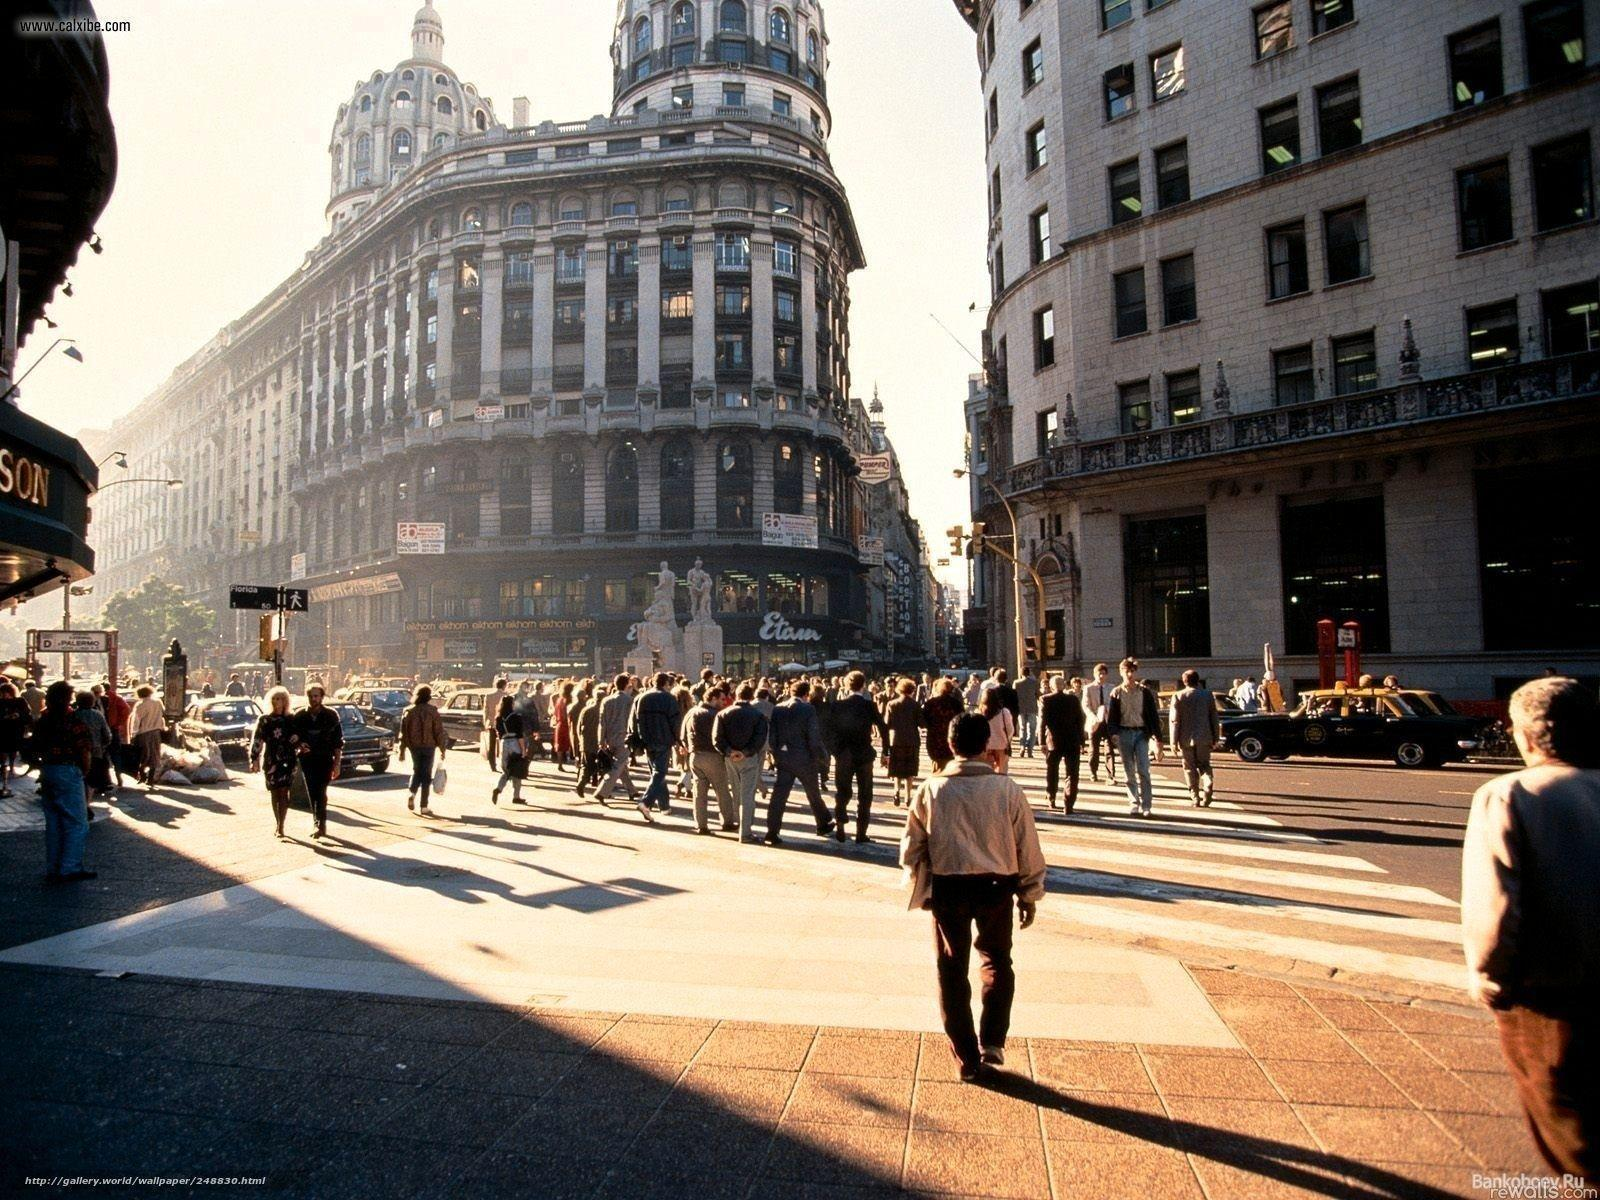 Download wallpaper Argentina, Buenos Aires, people, home free ...